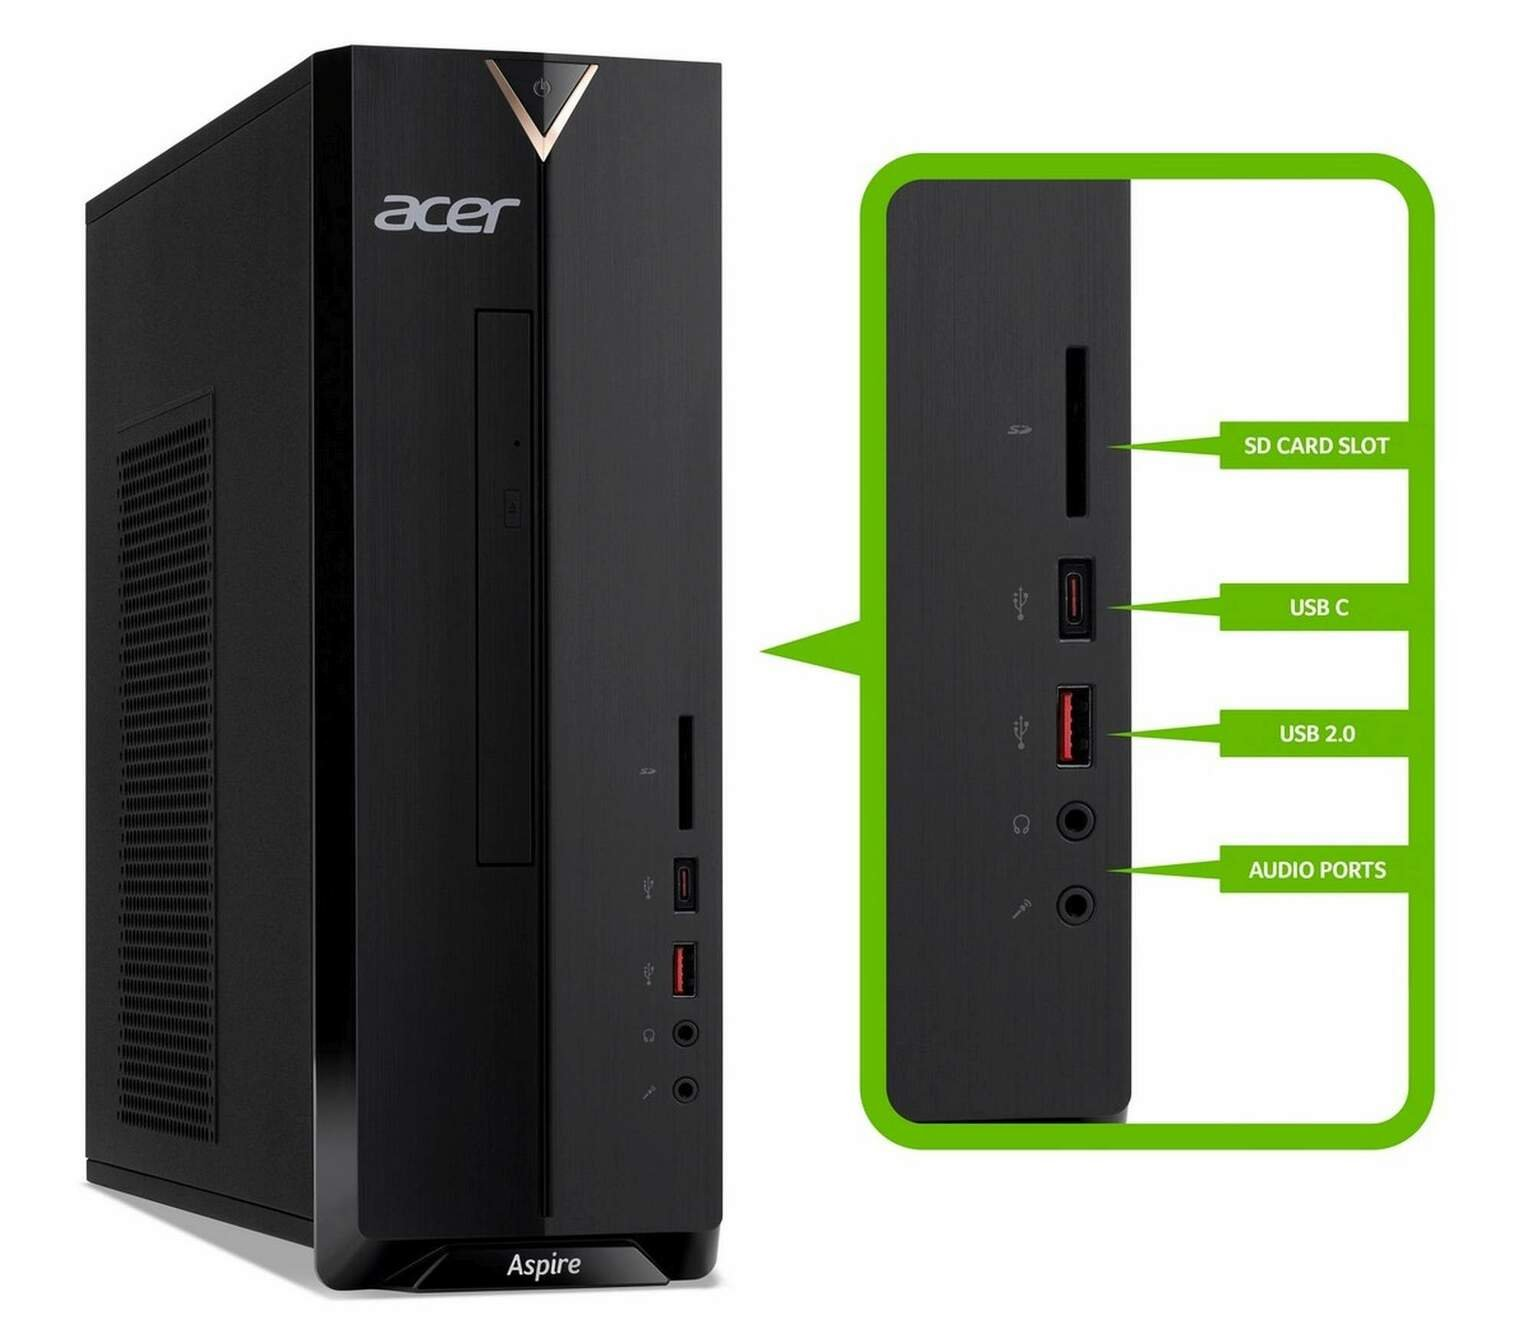 Acer Aspire XC-330 AMD A9 8GB 1TB Desktop PC